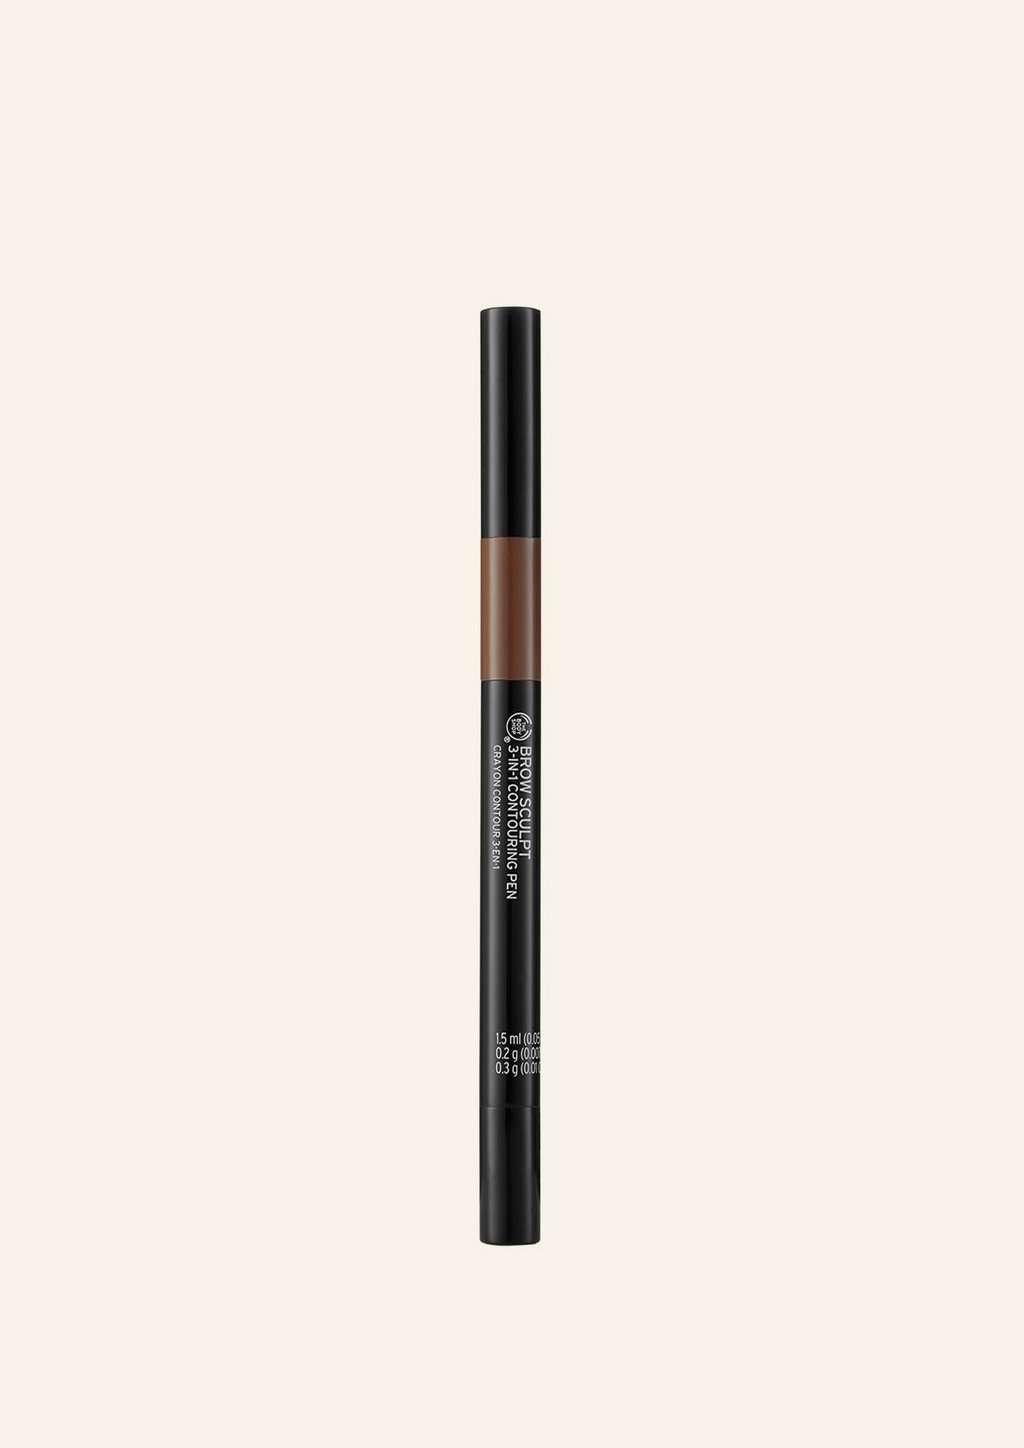 Brow Sculpt 3-in-1 Contouring Pen Medium Brown